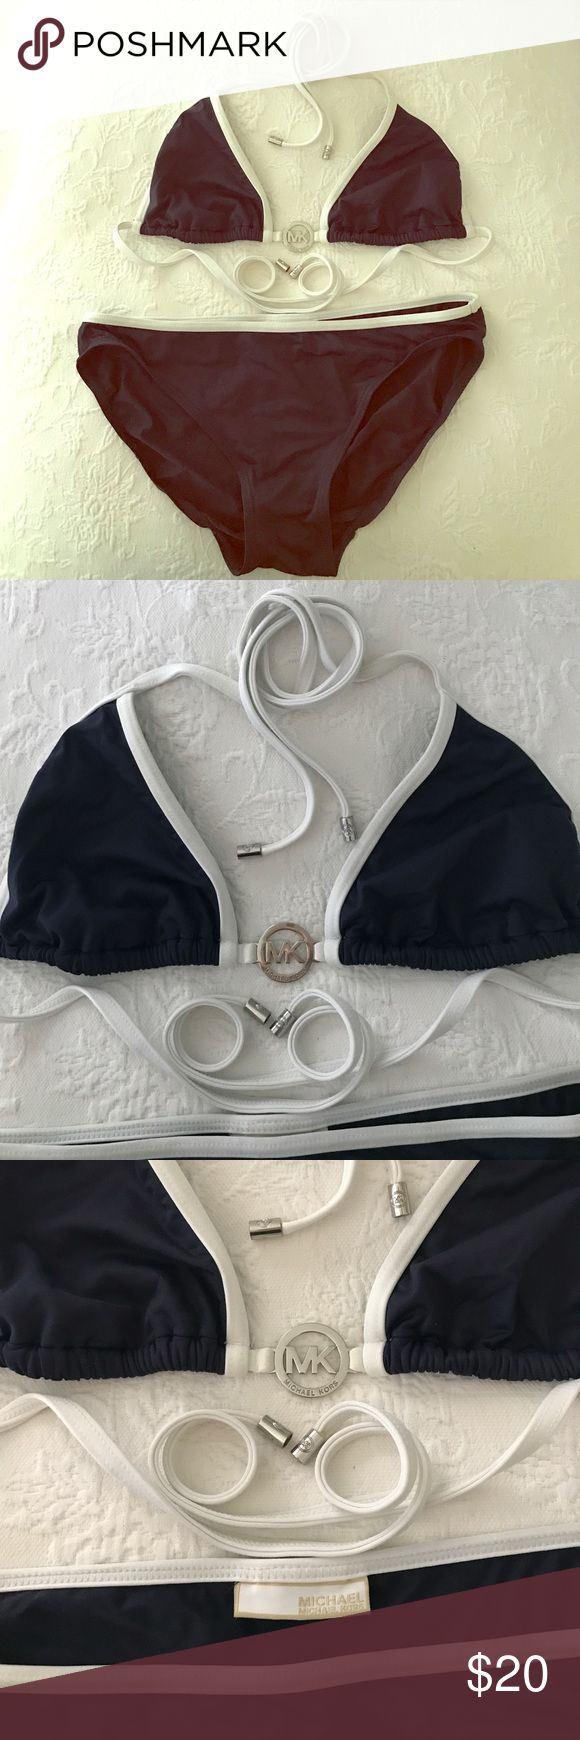 Michael Kors Bikini Nautical inspired string bikini in navy blue with white and silver details. I cut the size tags out of this suit but fits like an 8 or medium. GUC KORS Michael Kors Swim Bikinis